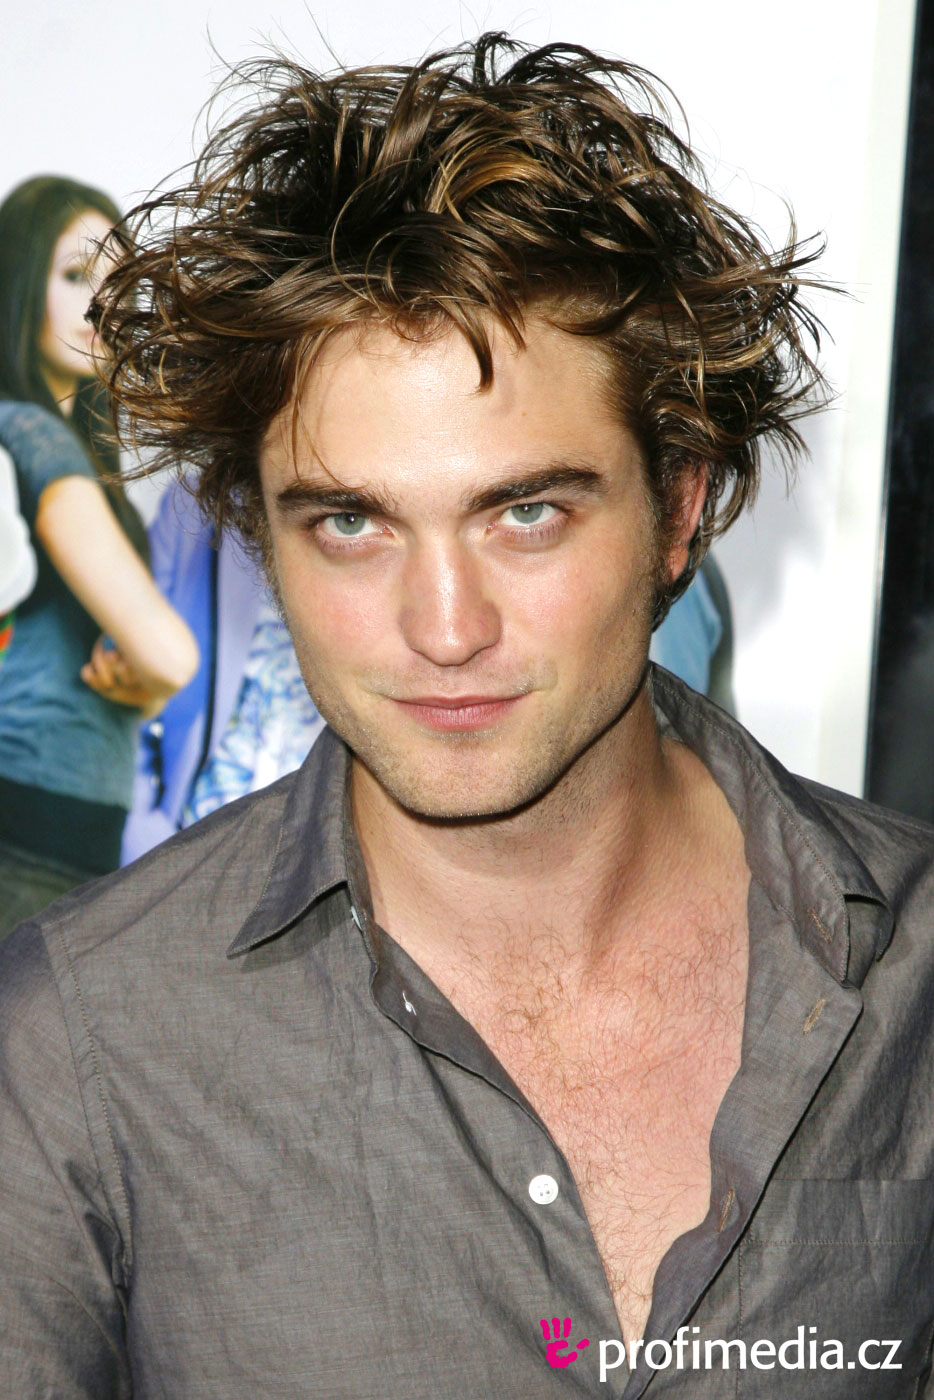 Watch - Pattinson Robert hairstyles pictures video